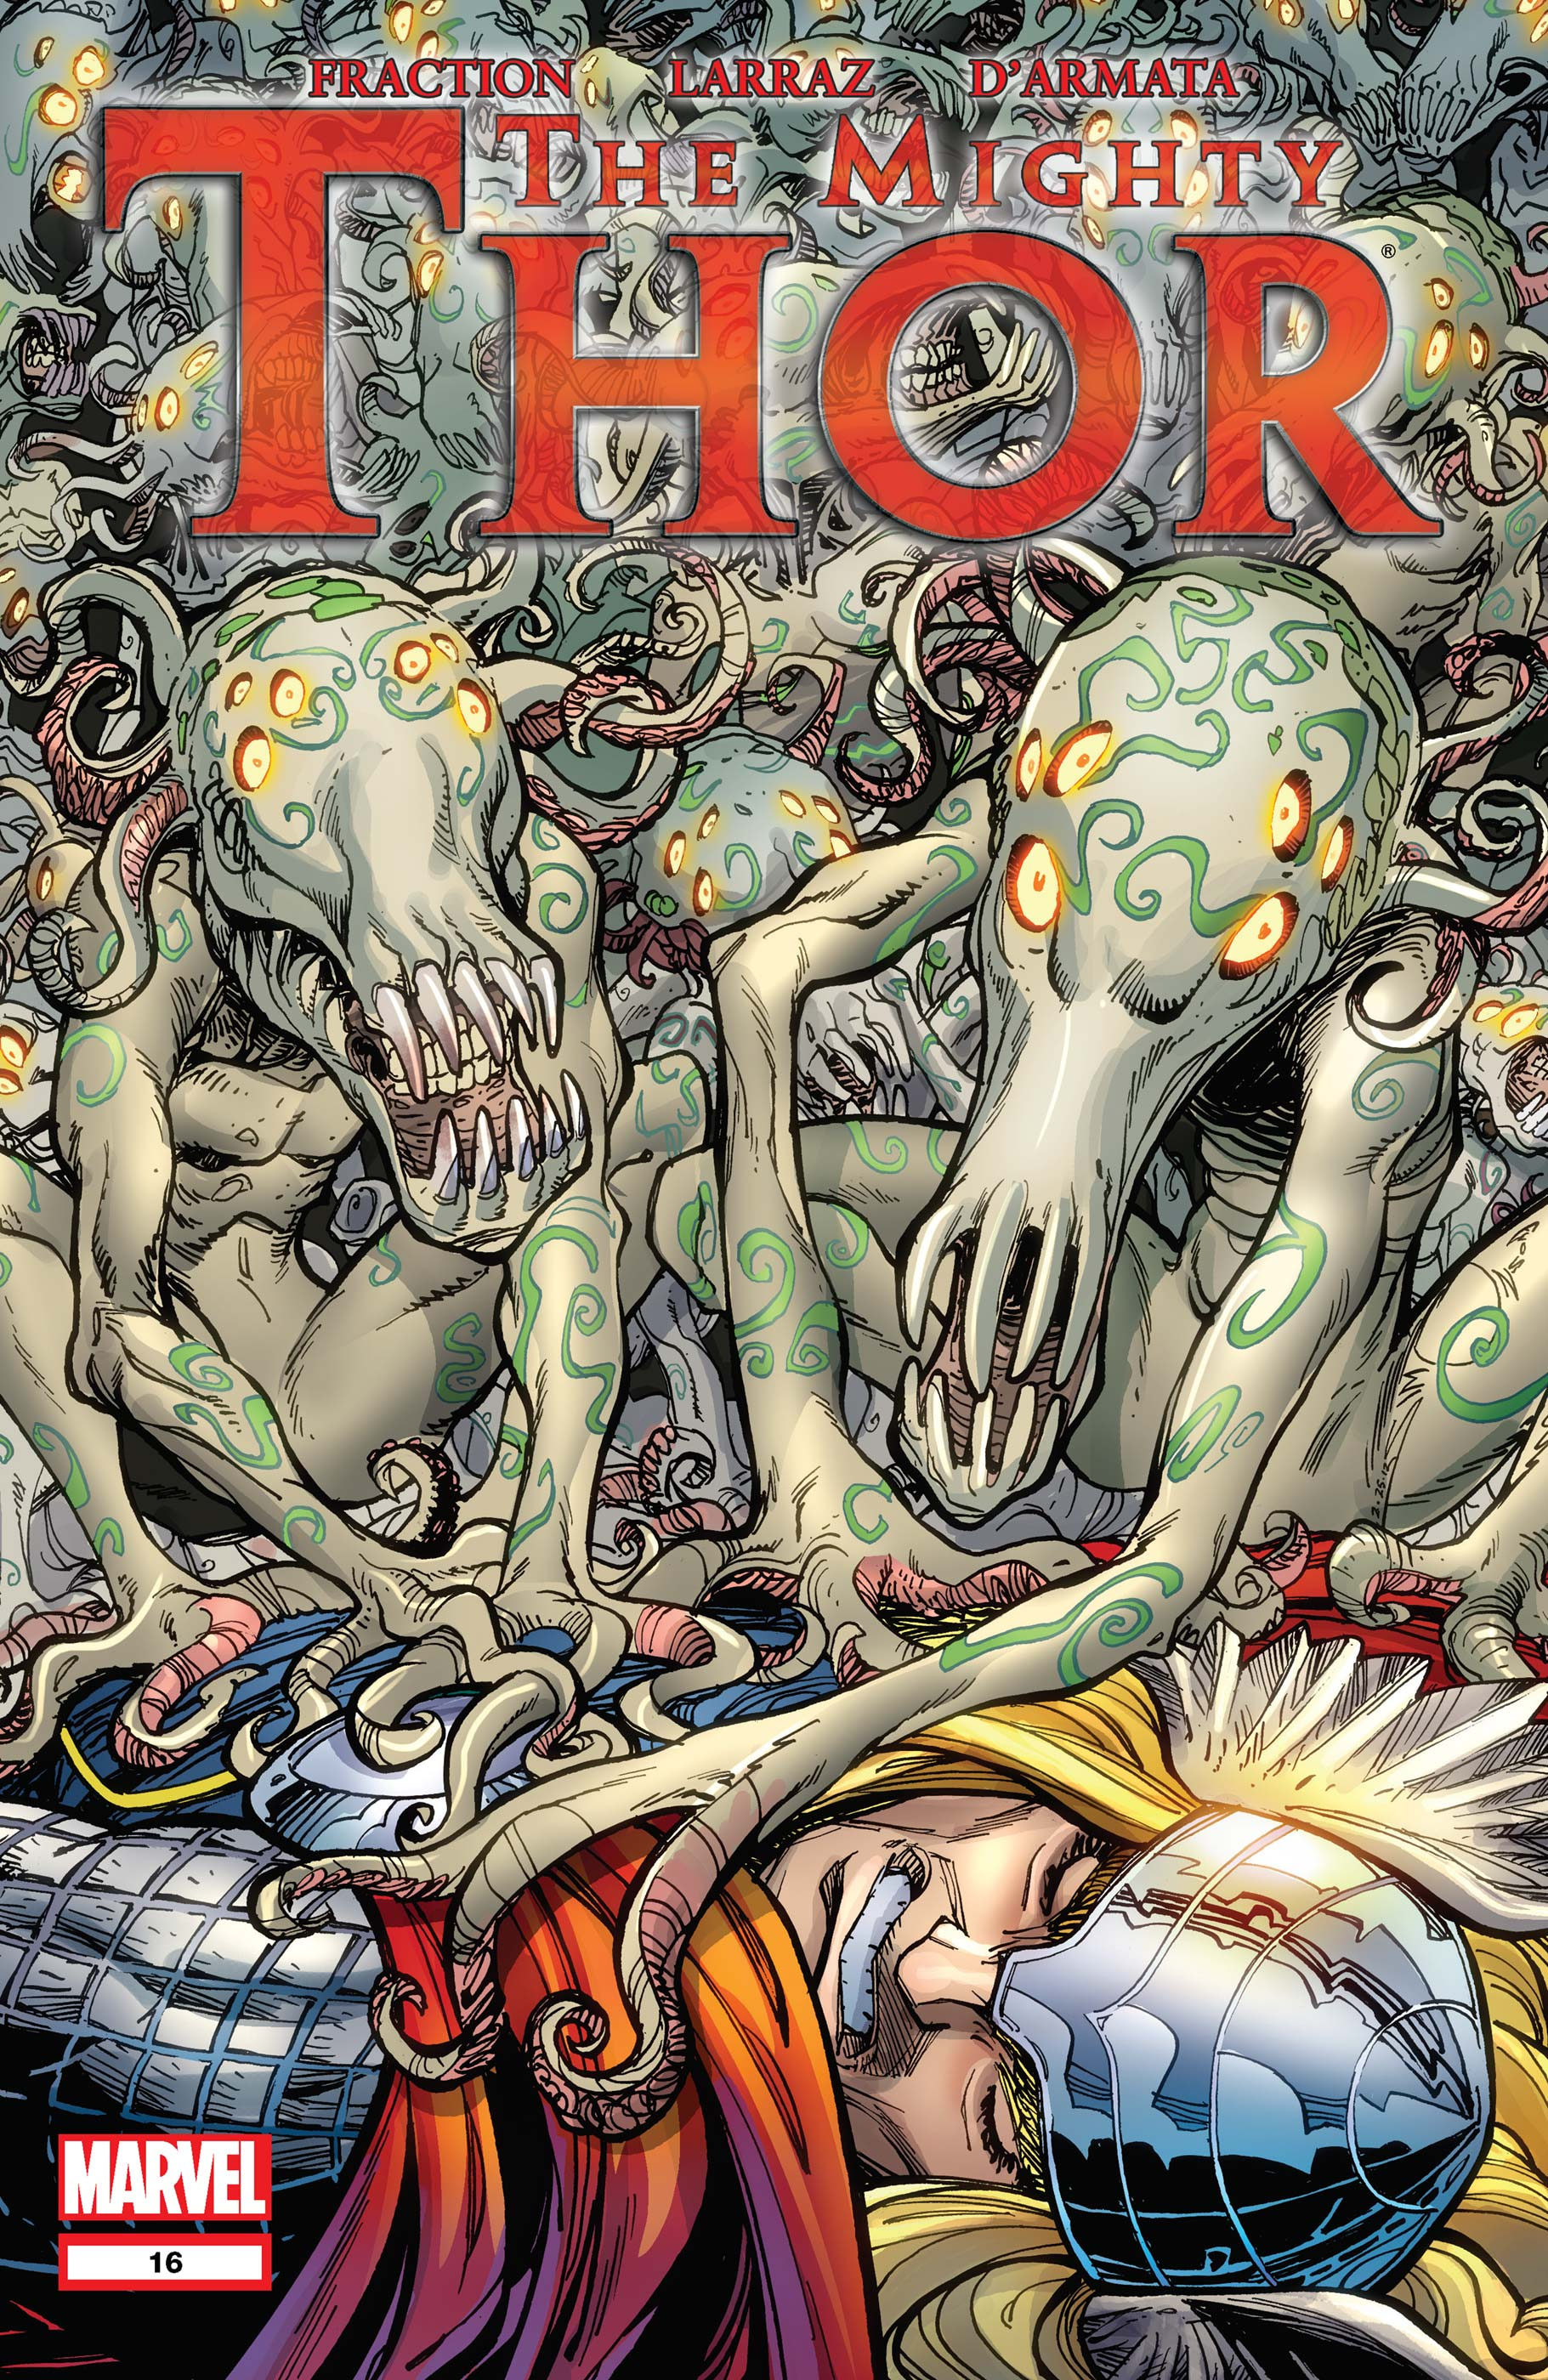 The Mighty Thor (2011) #16